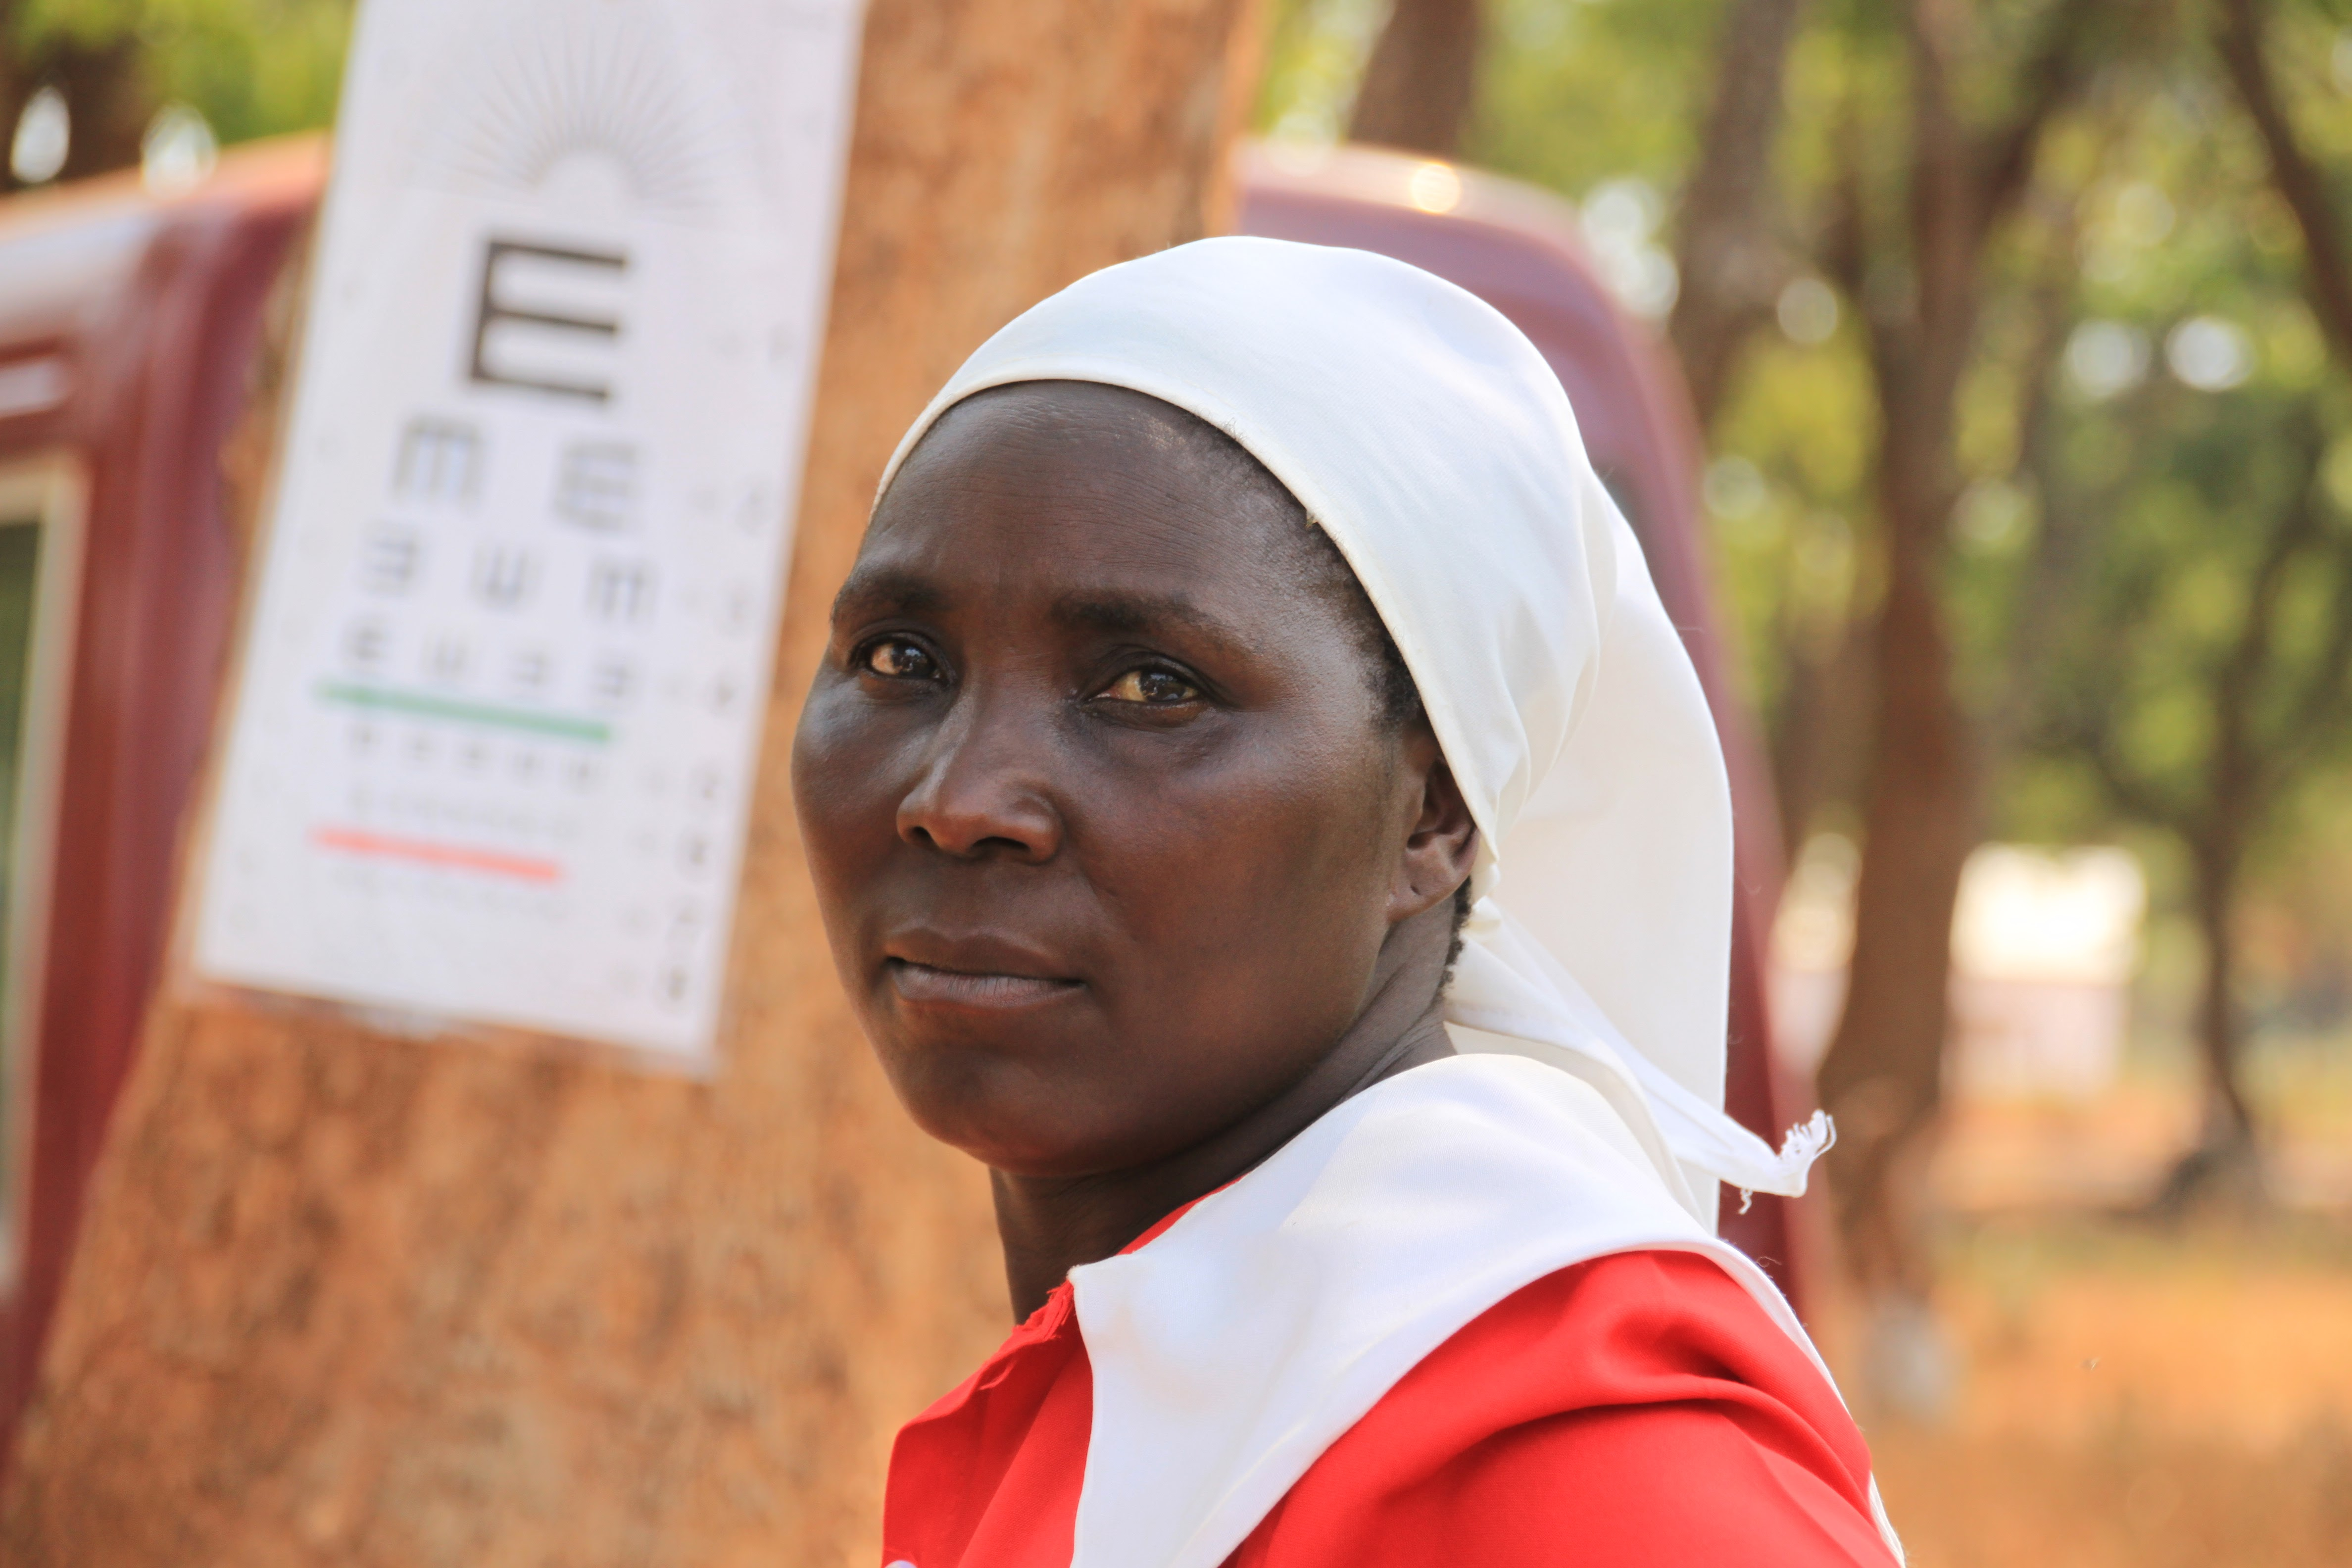 An African lady at an eye screening